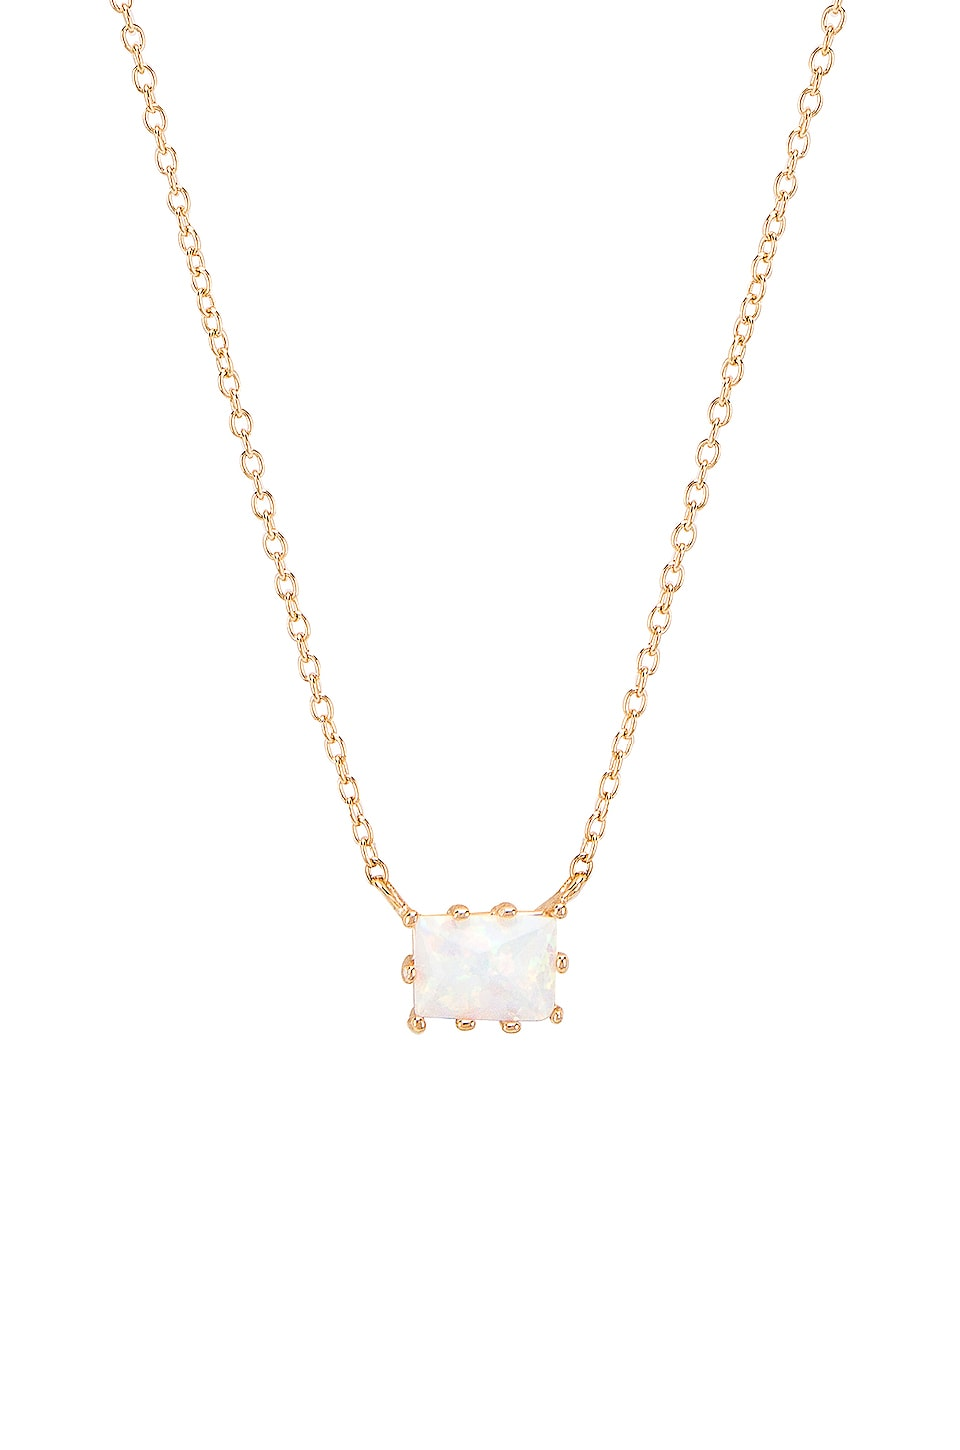 Natalie B Jewelry Grace Necklace in Gold